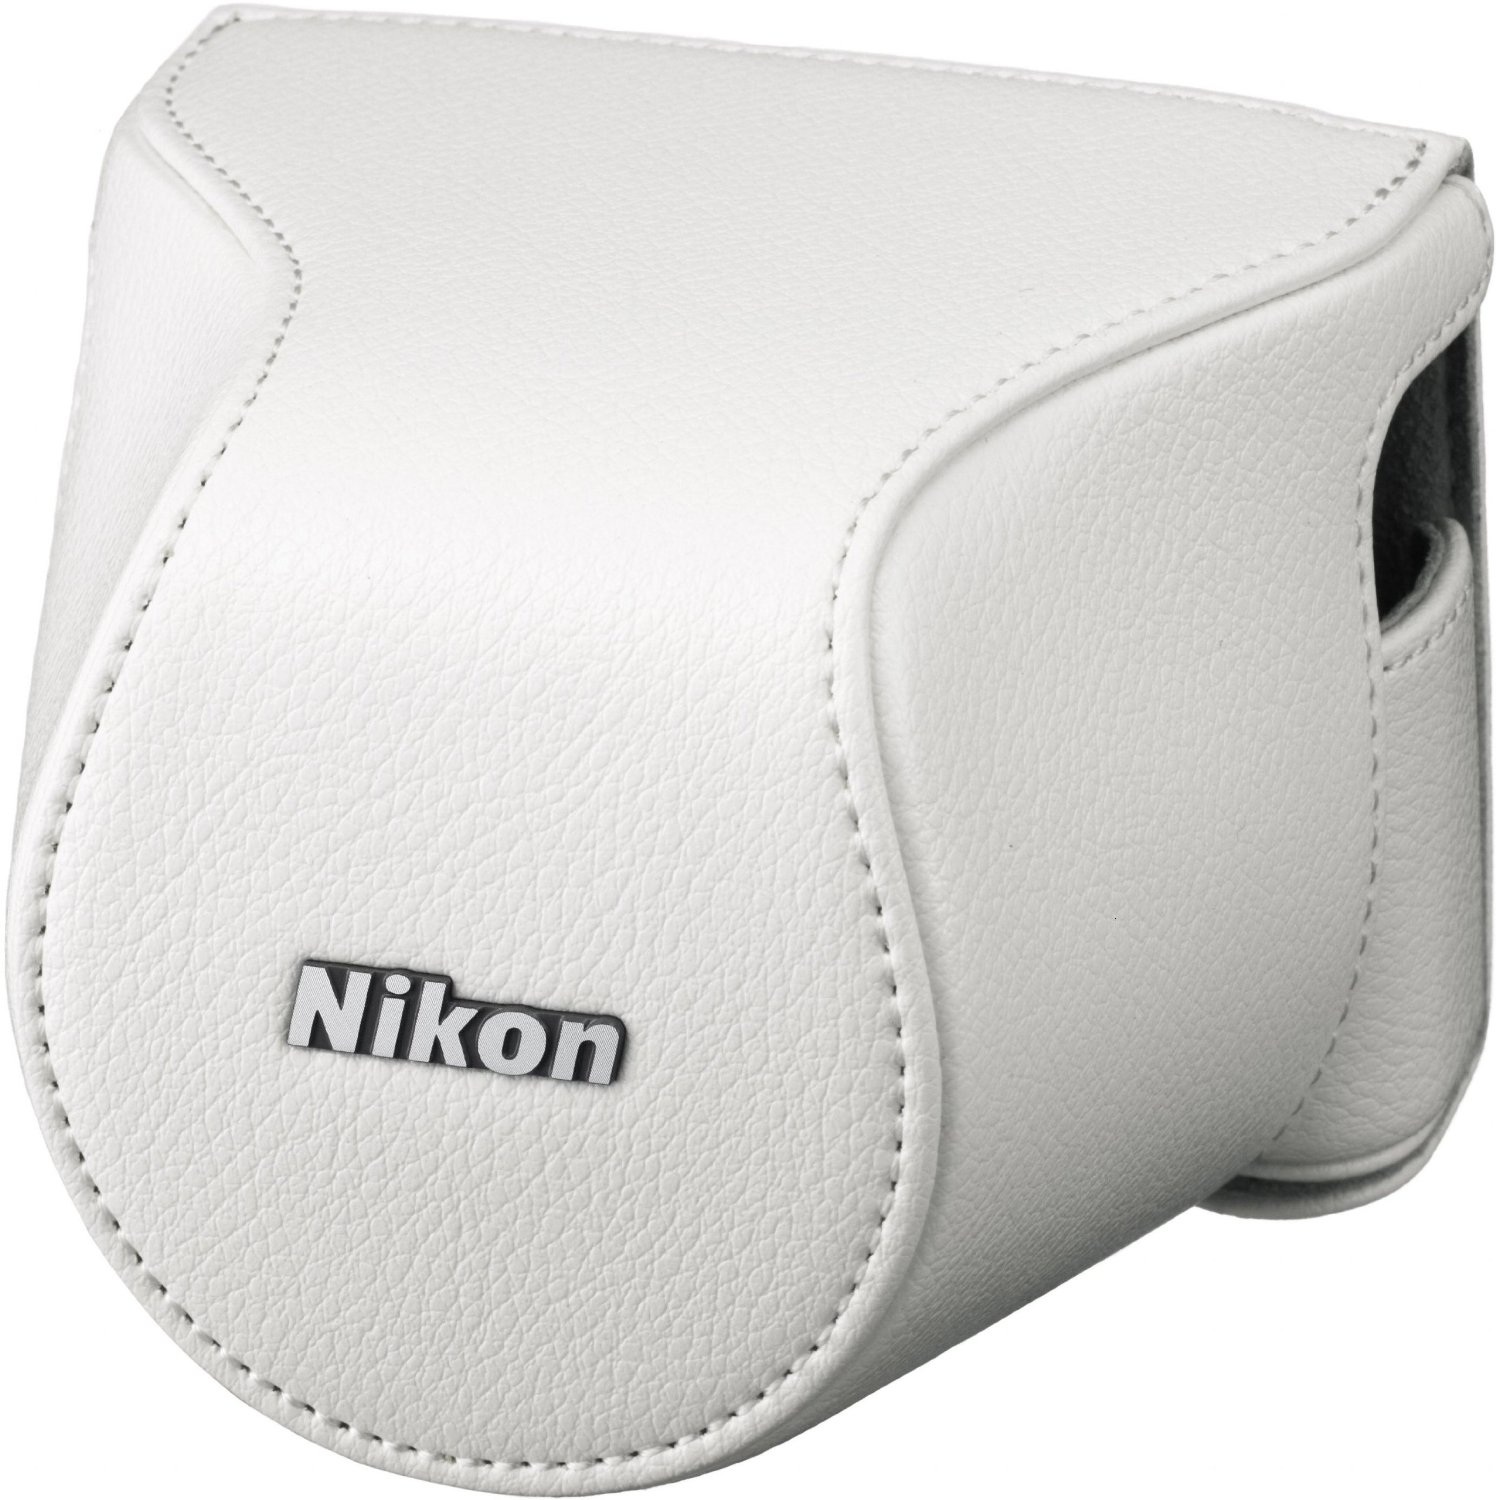 CB-N2200 White custodia inferiore Nikon 1 S1, J3